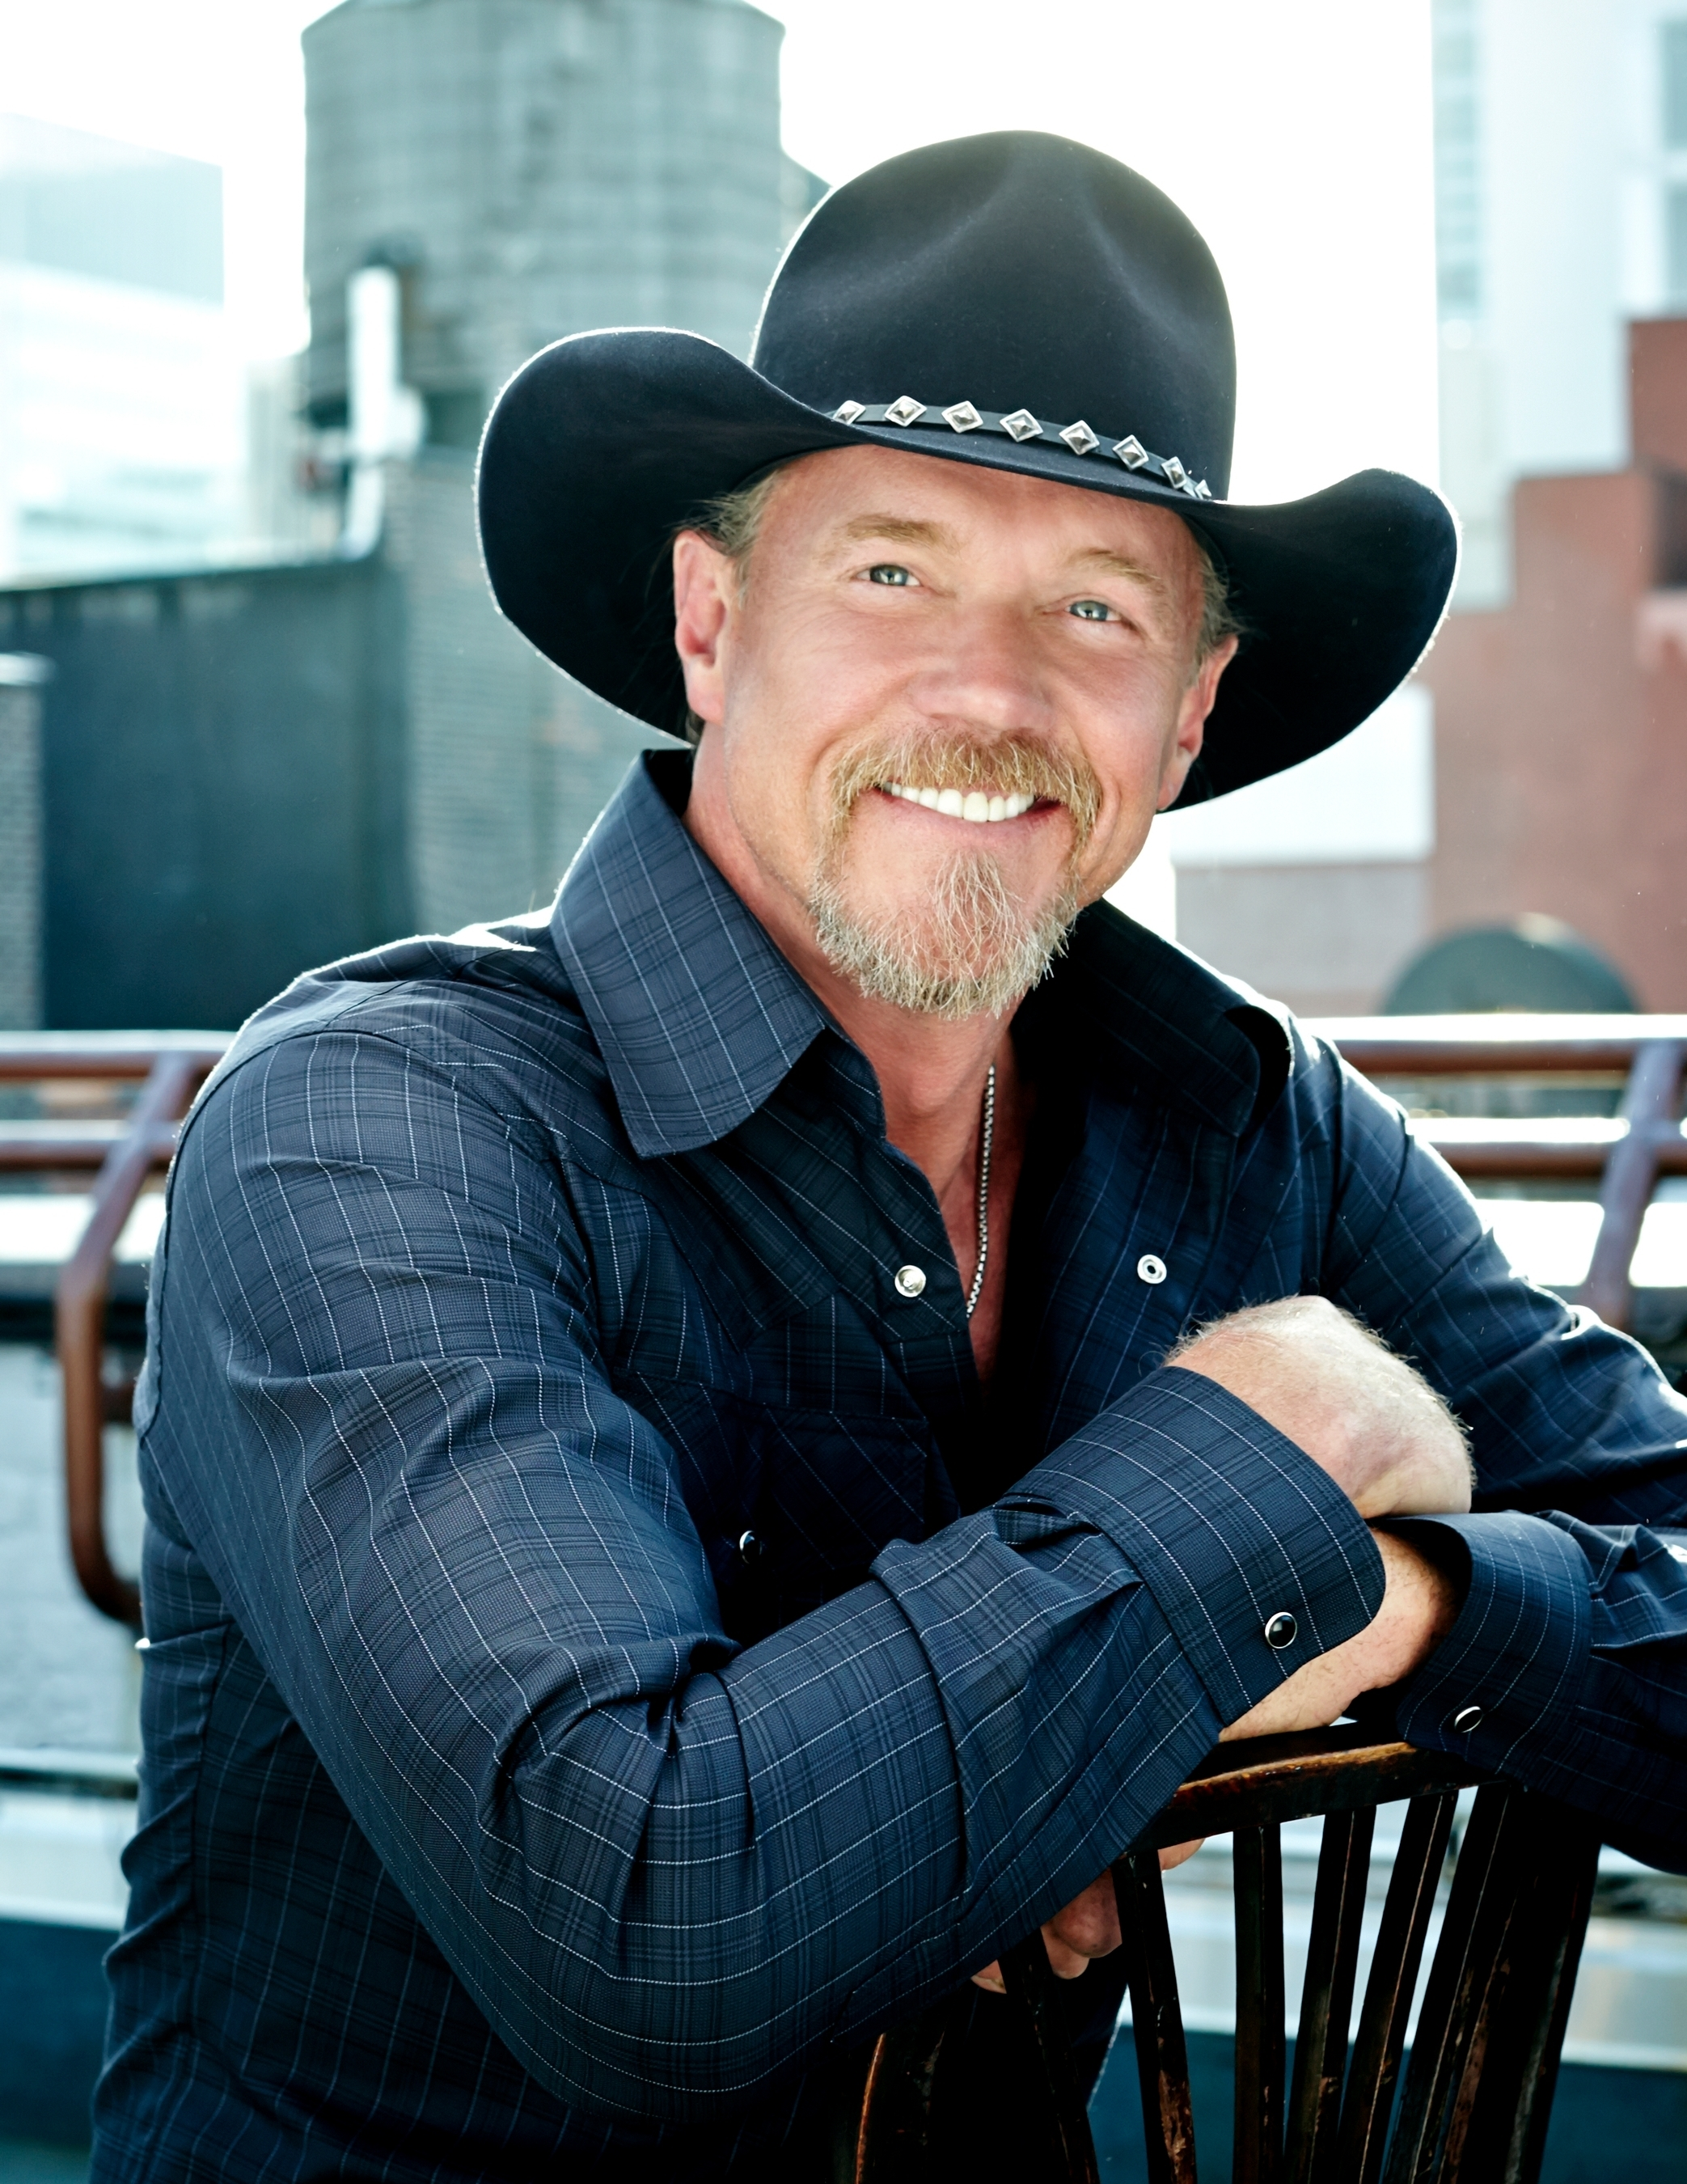 Trace Adkins to Return Home to Play Concert at Muddy Bottoms This July 4th